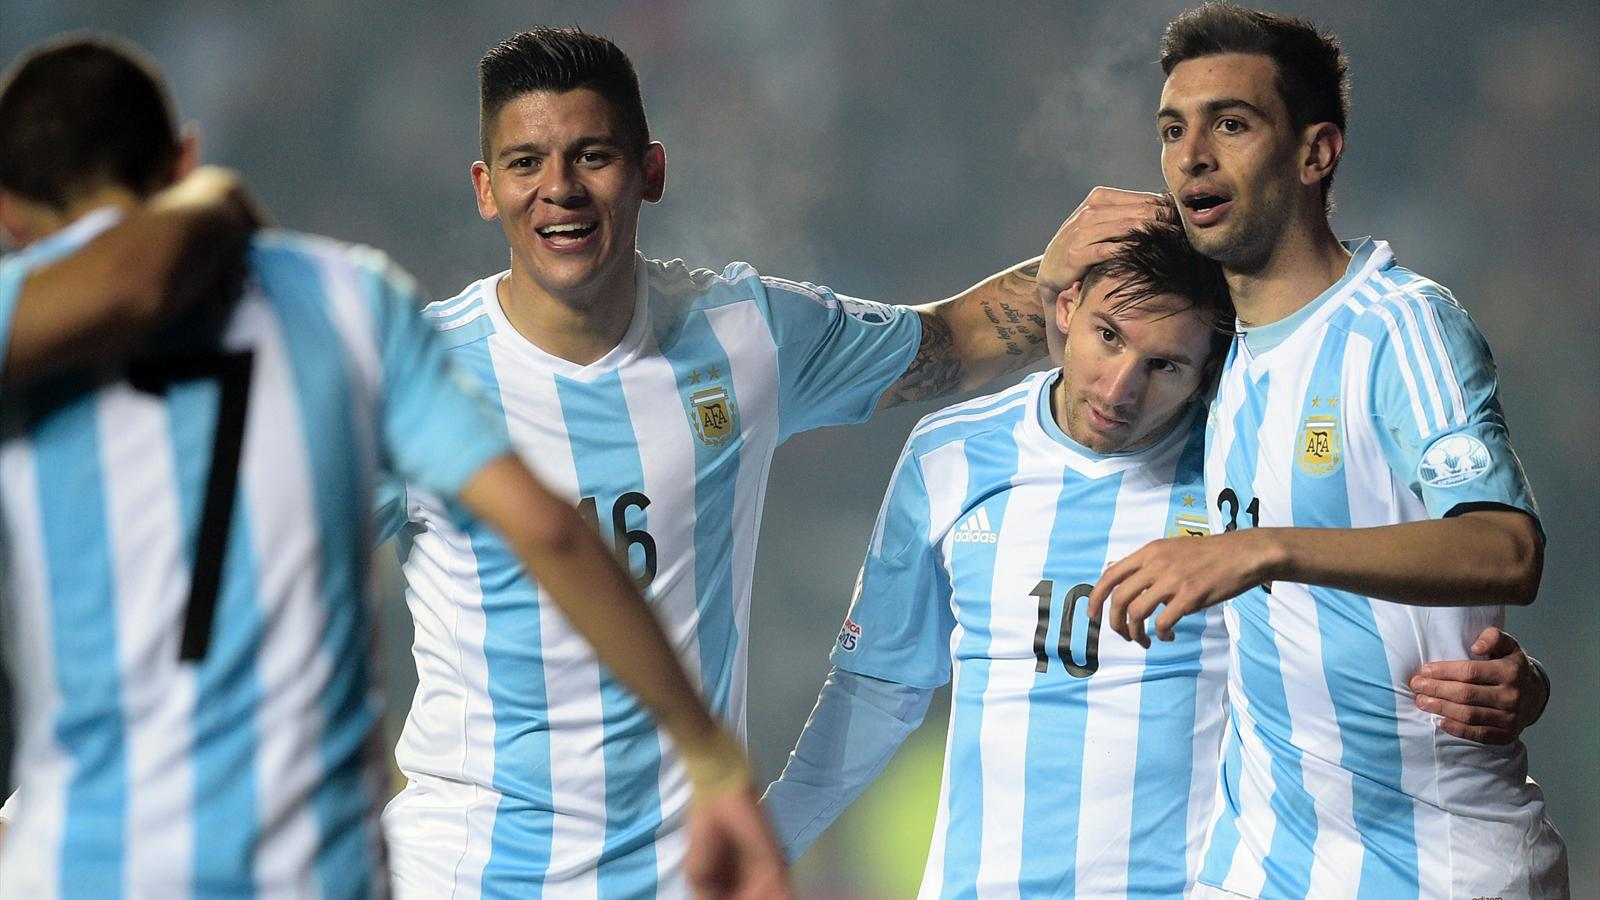 Lionel Messi and team-mates with Argentina at the Copa América